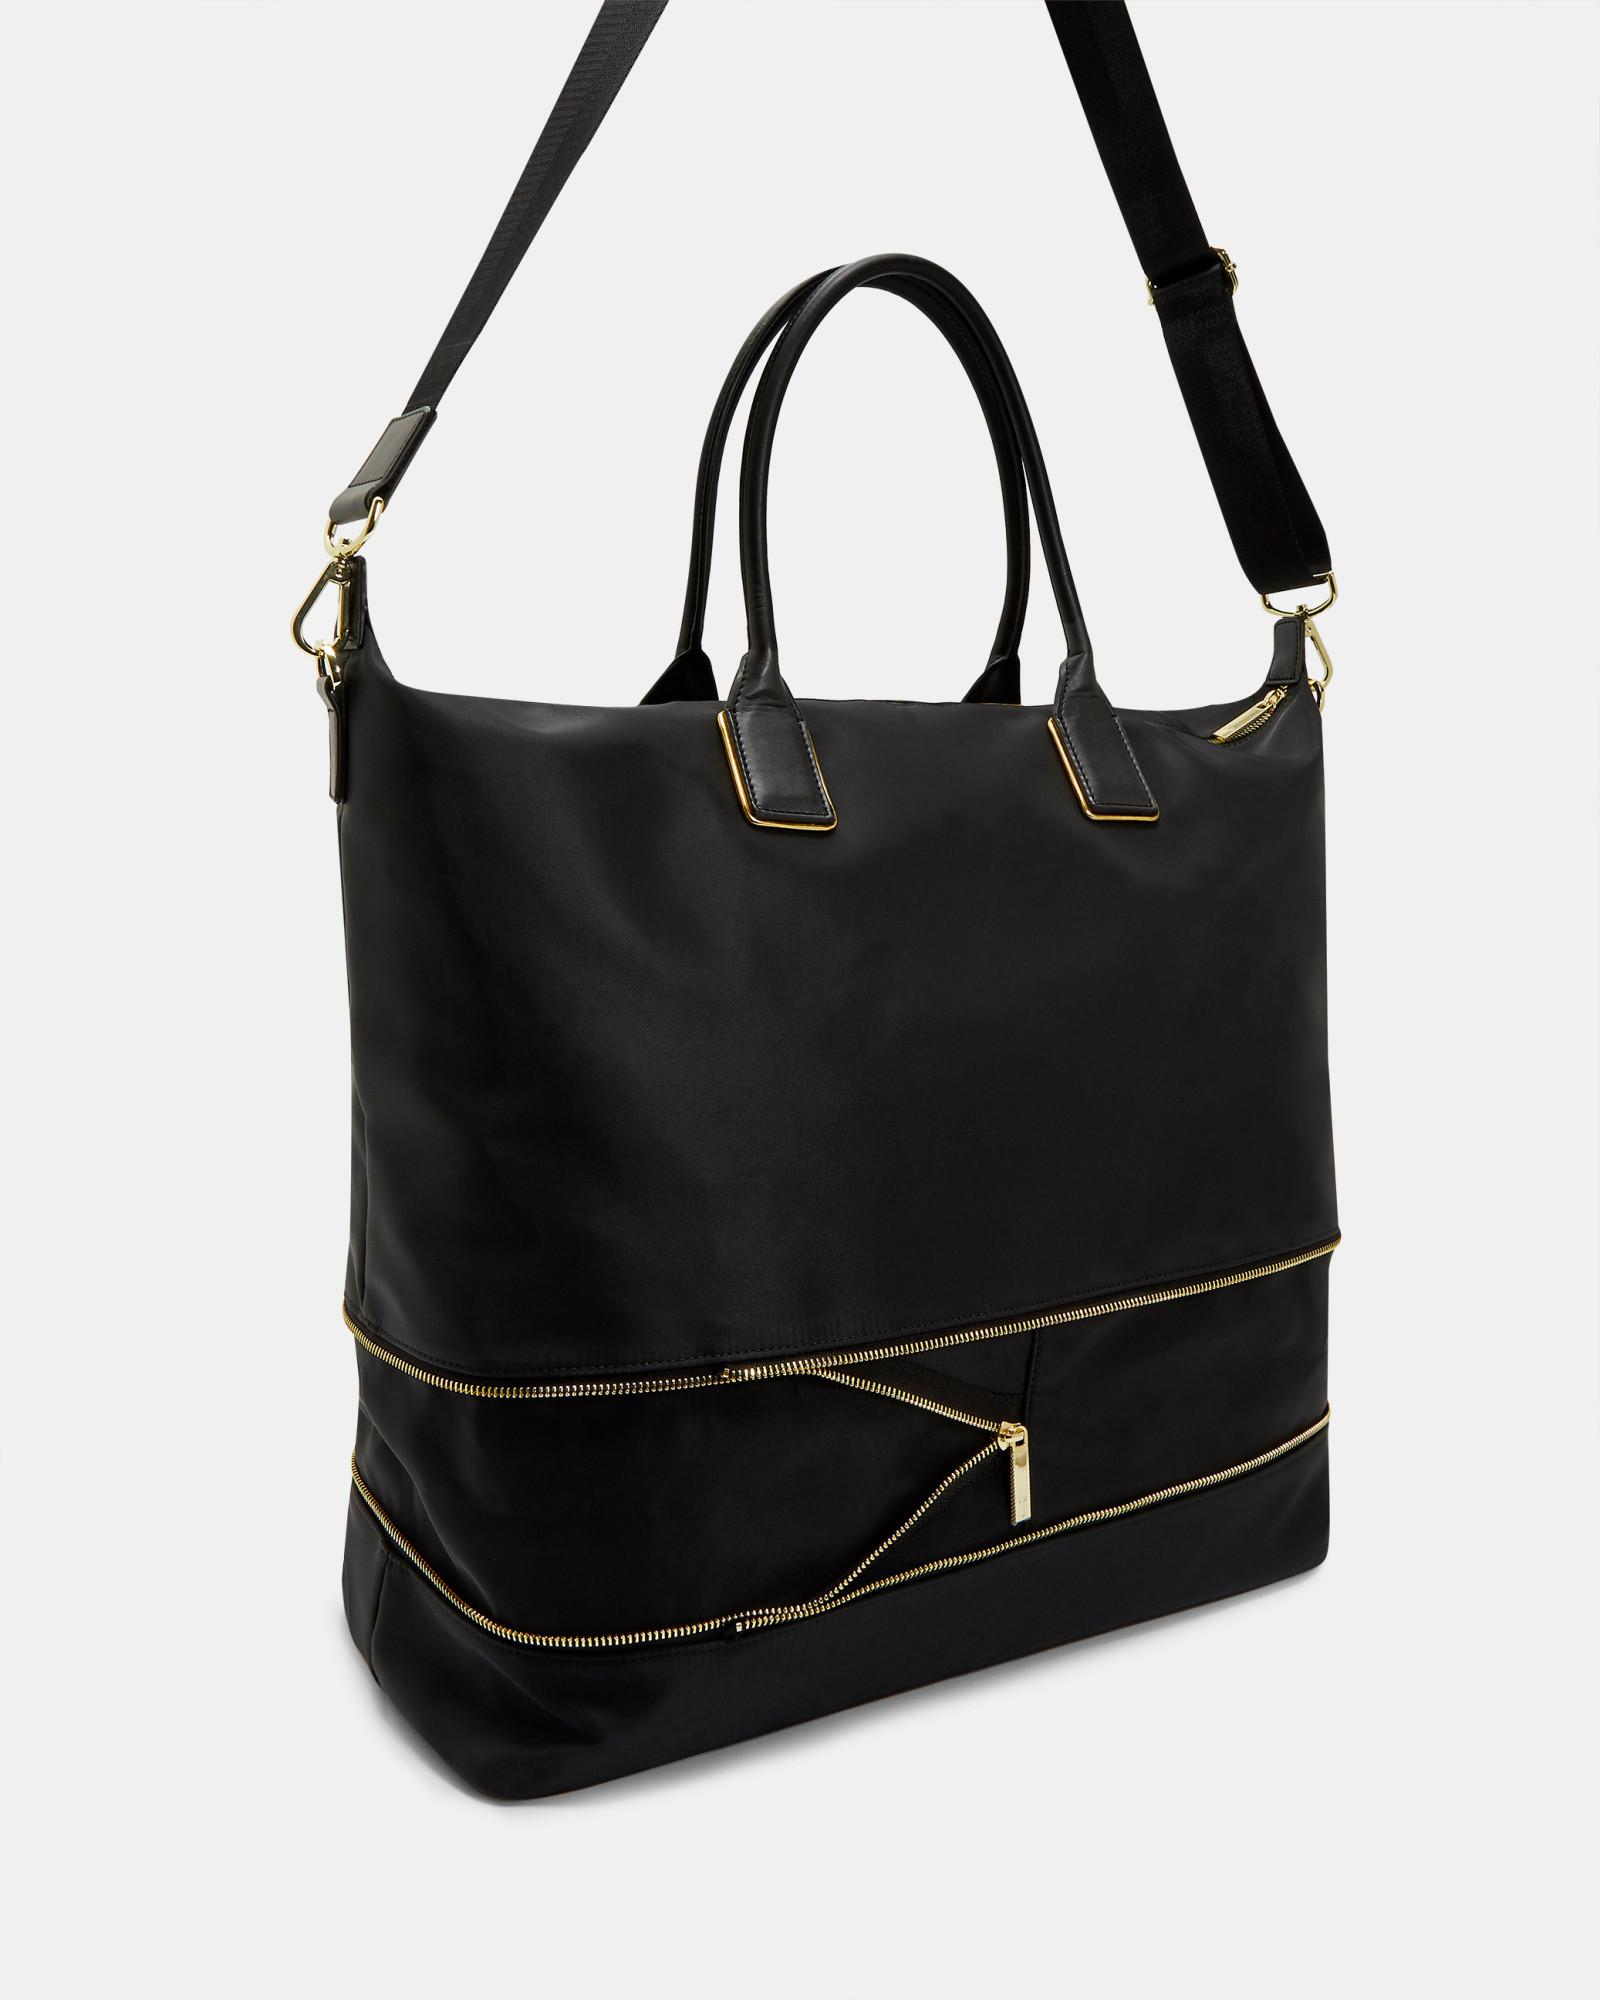 830756ddcfddc Lyst - Ted Baker Extendable Nylon Tote Bag in Black